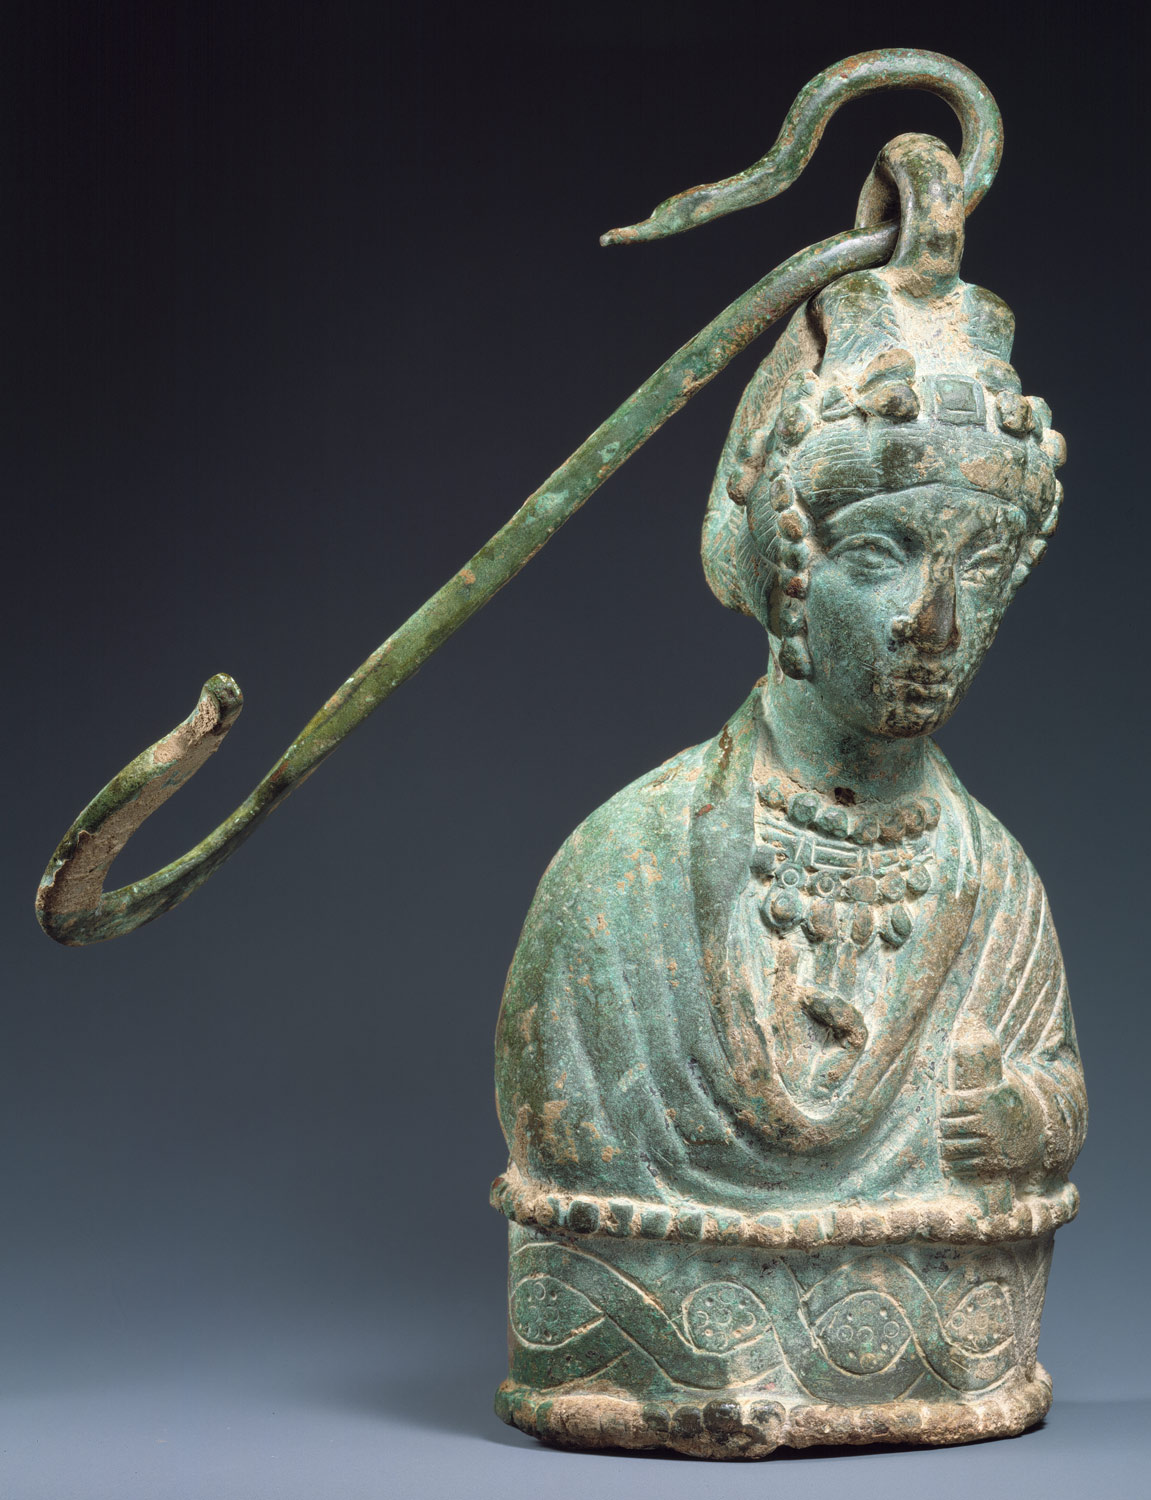 Steelyard Weight with a Bust of a Byzantine Empress and a Hook